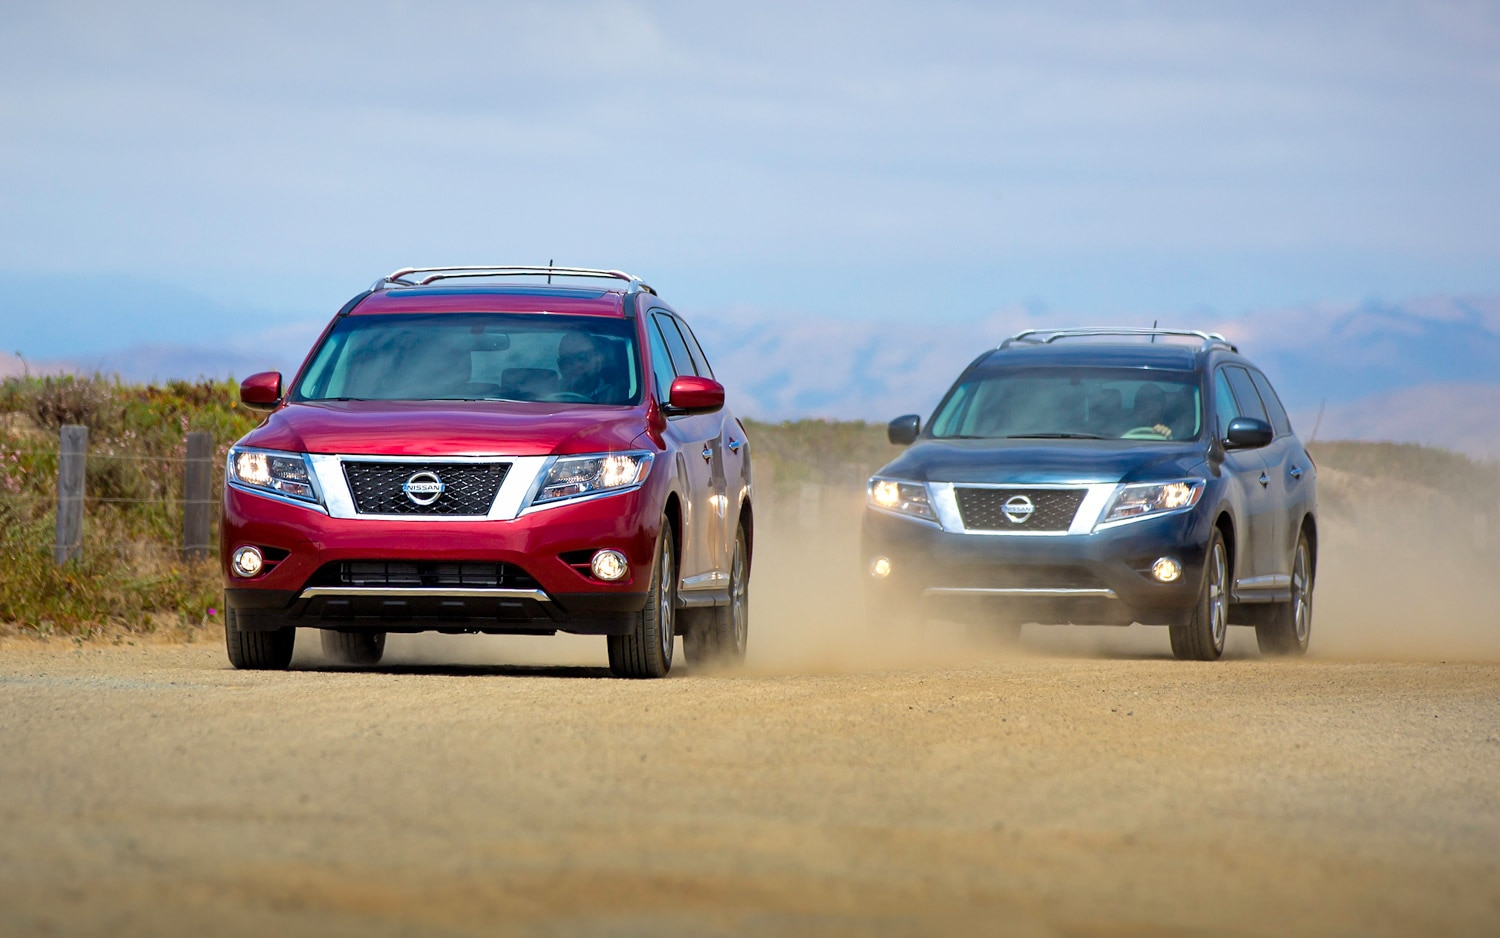 2013 Nissan Pathfinder Red And Blue